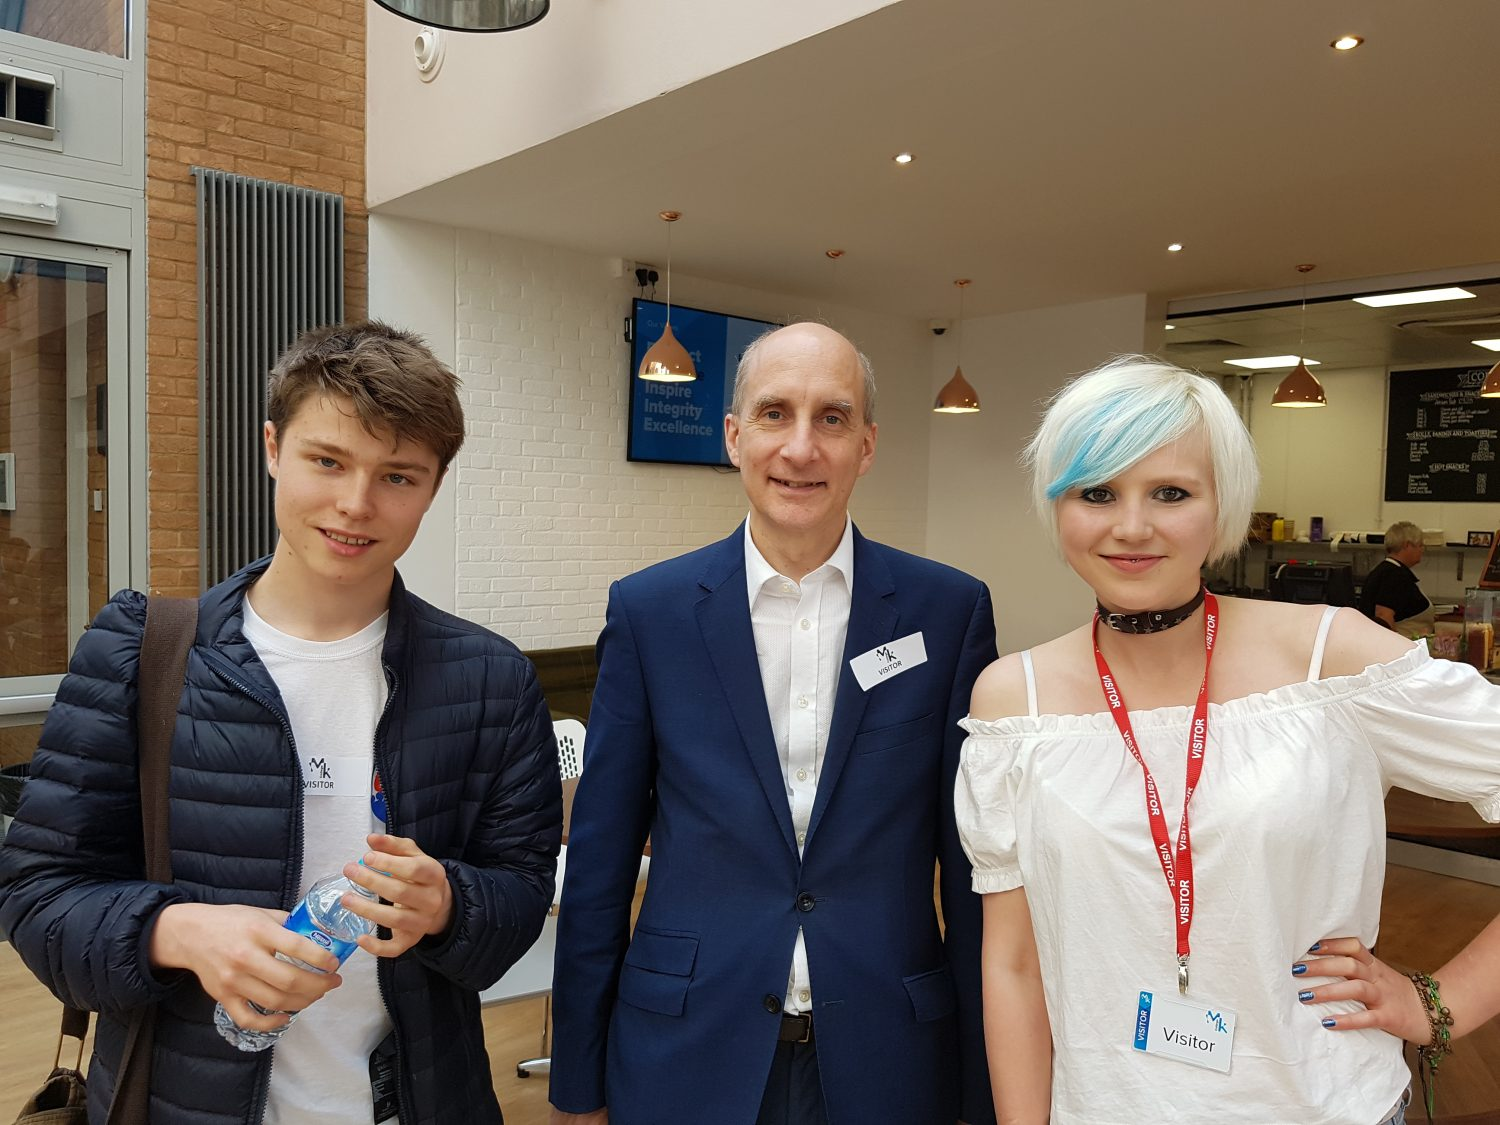 Will Day OFOC, Lord Adonis, Madeleina Kay